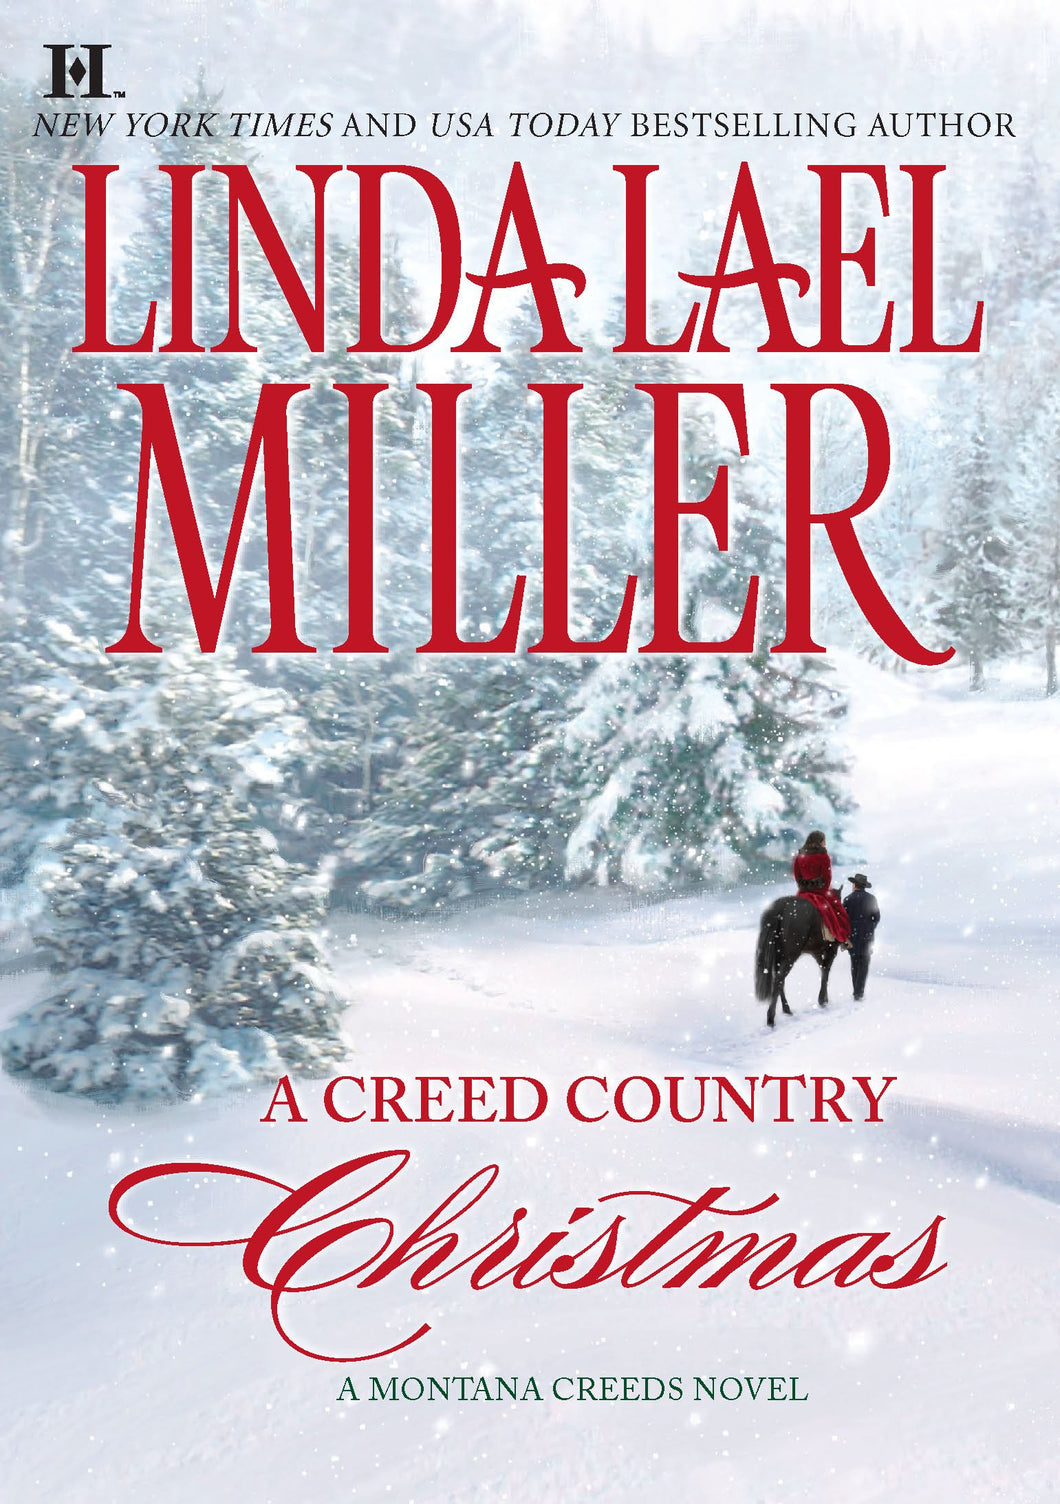 A Creed Country Christmas (The Montana Creeds)